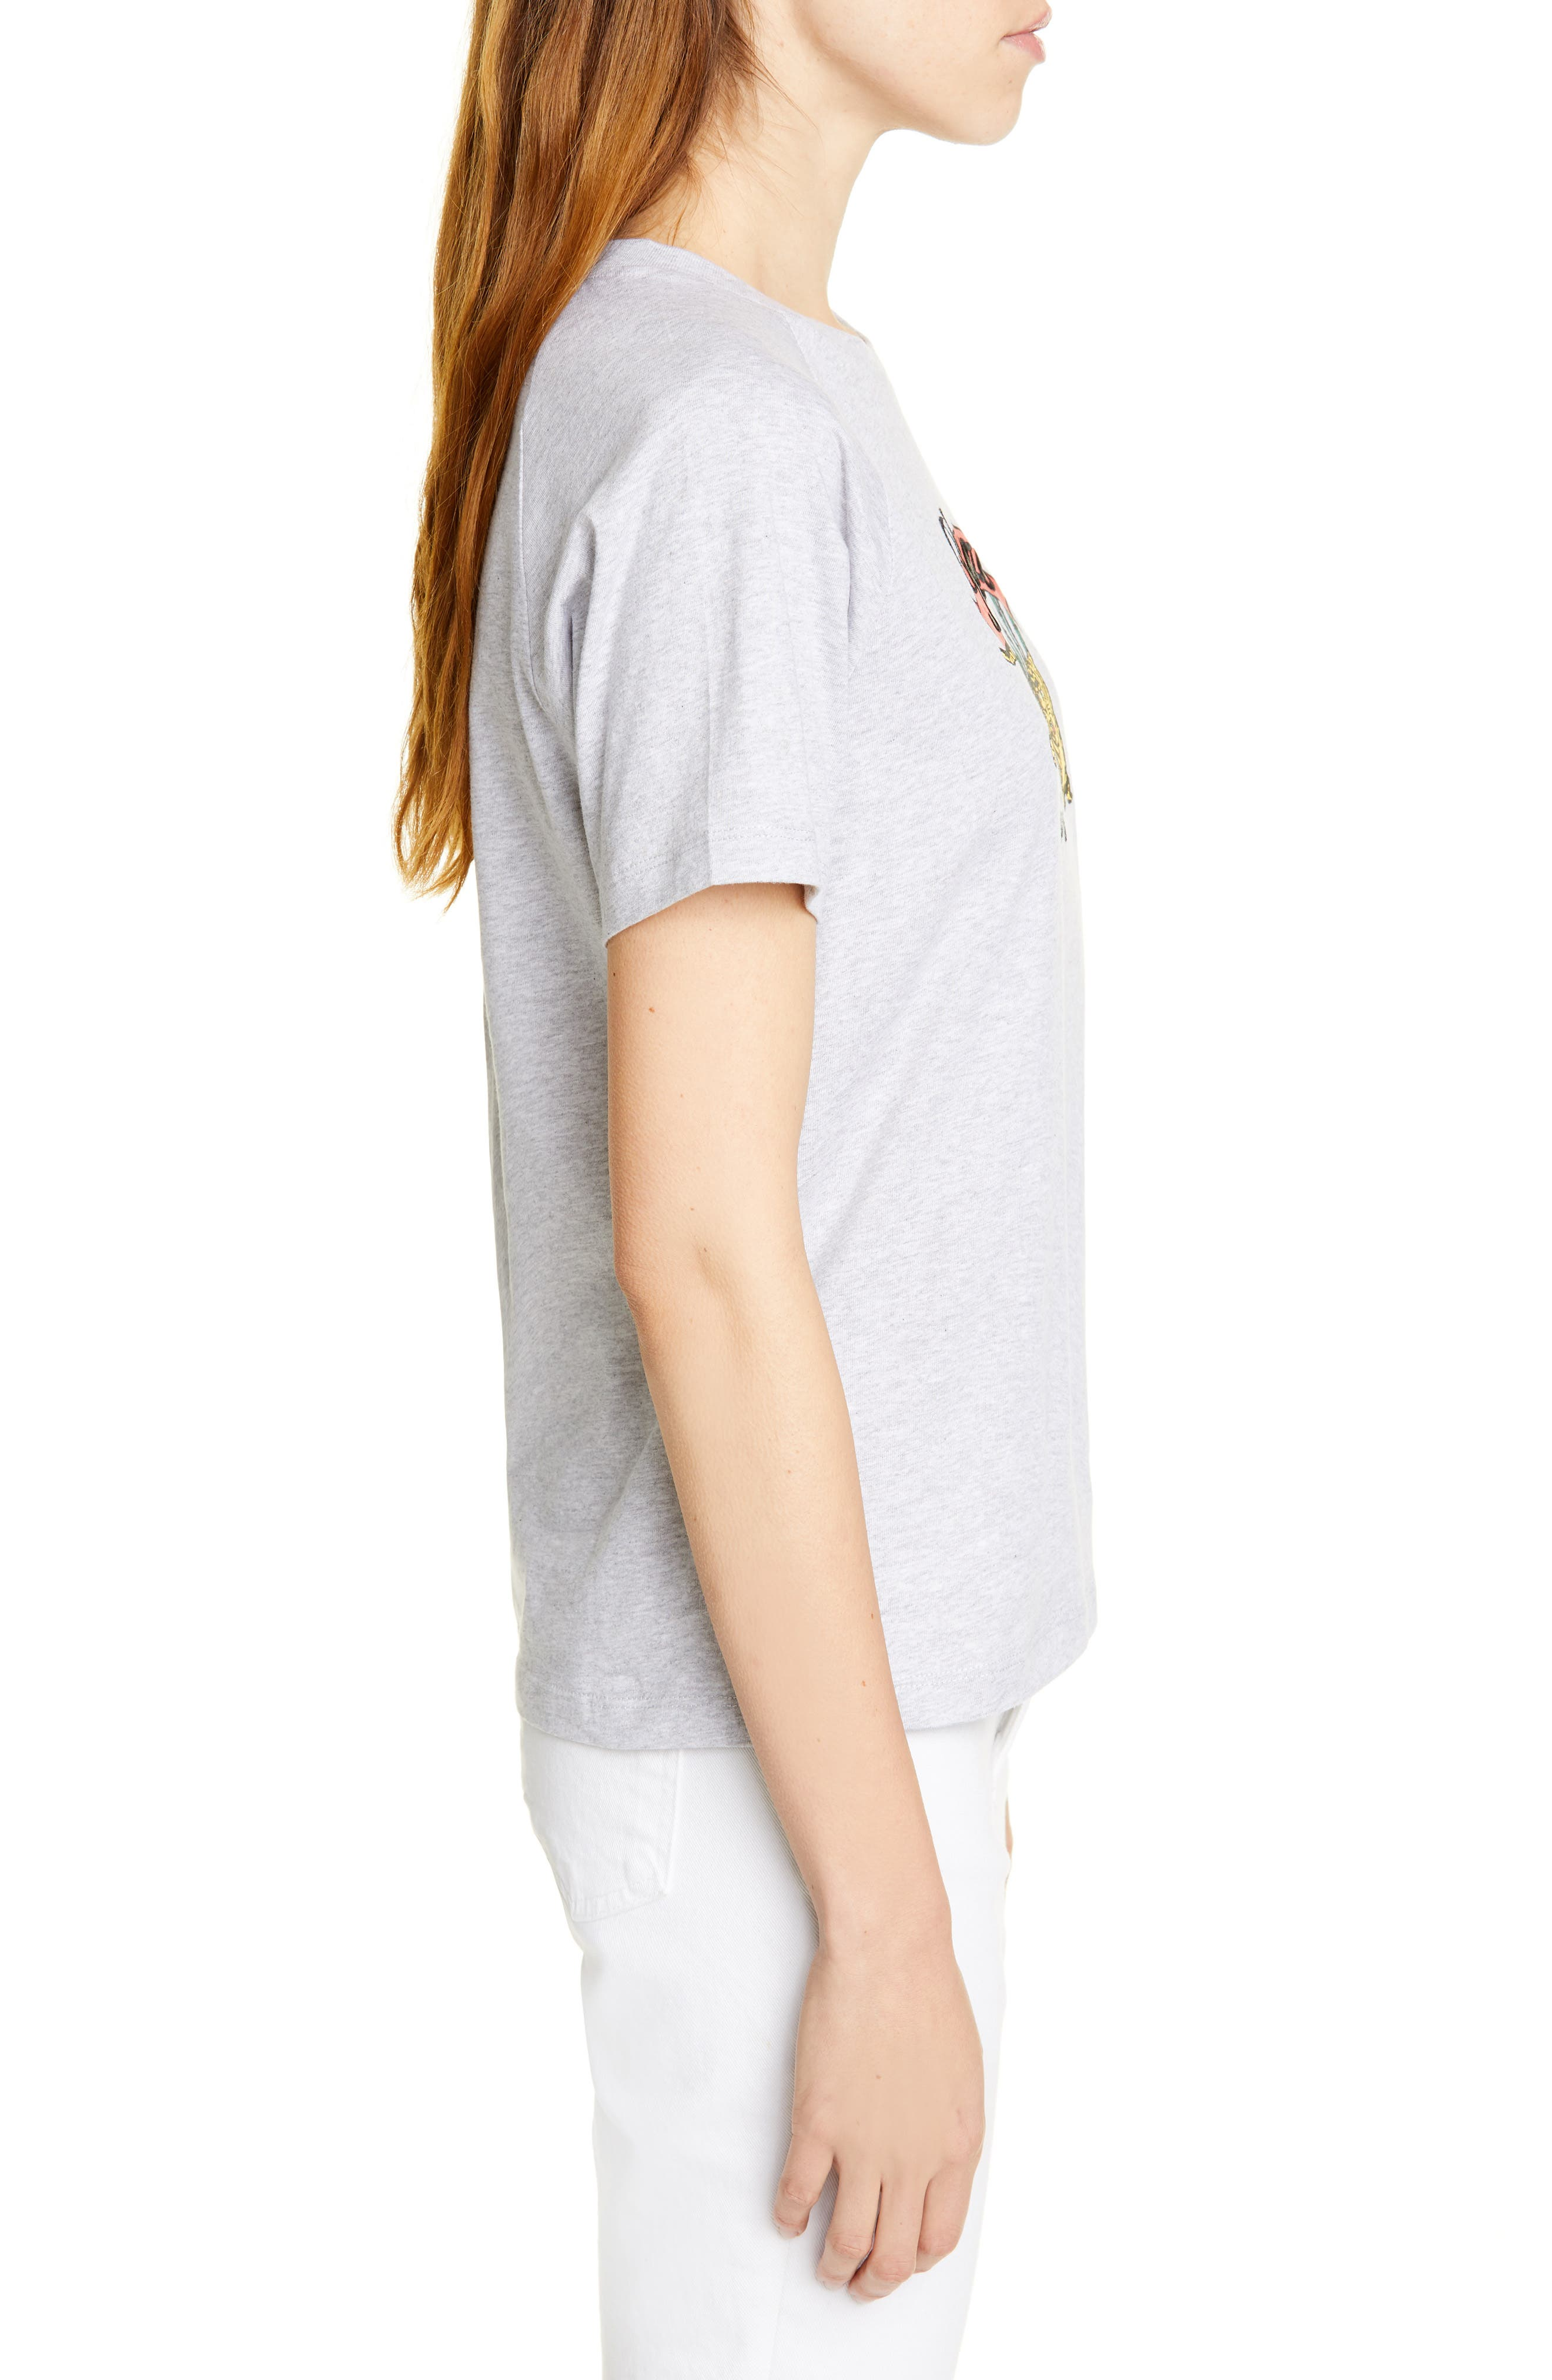 KENZO,                             Side Logo Tee,                             Alternate thumbnail 3, color,                             032